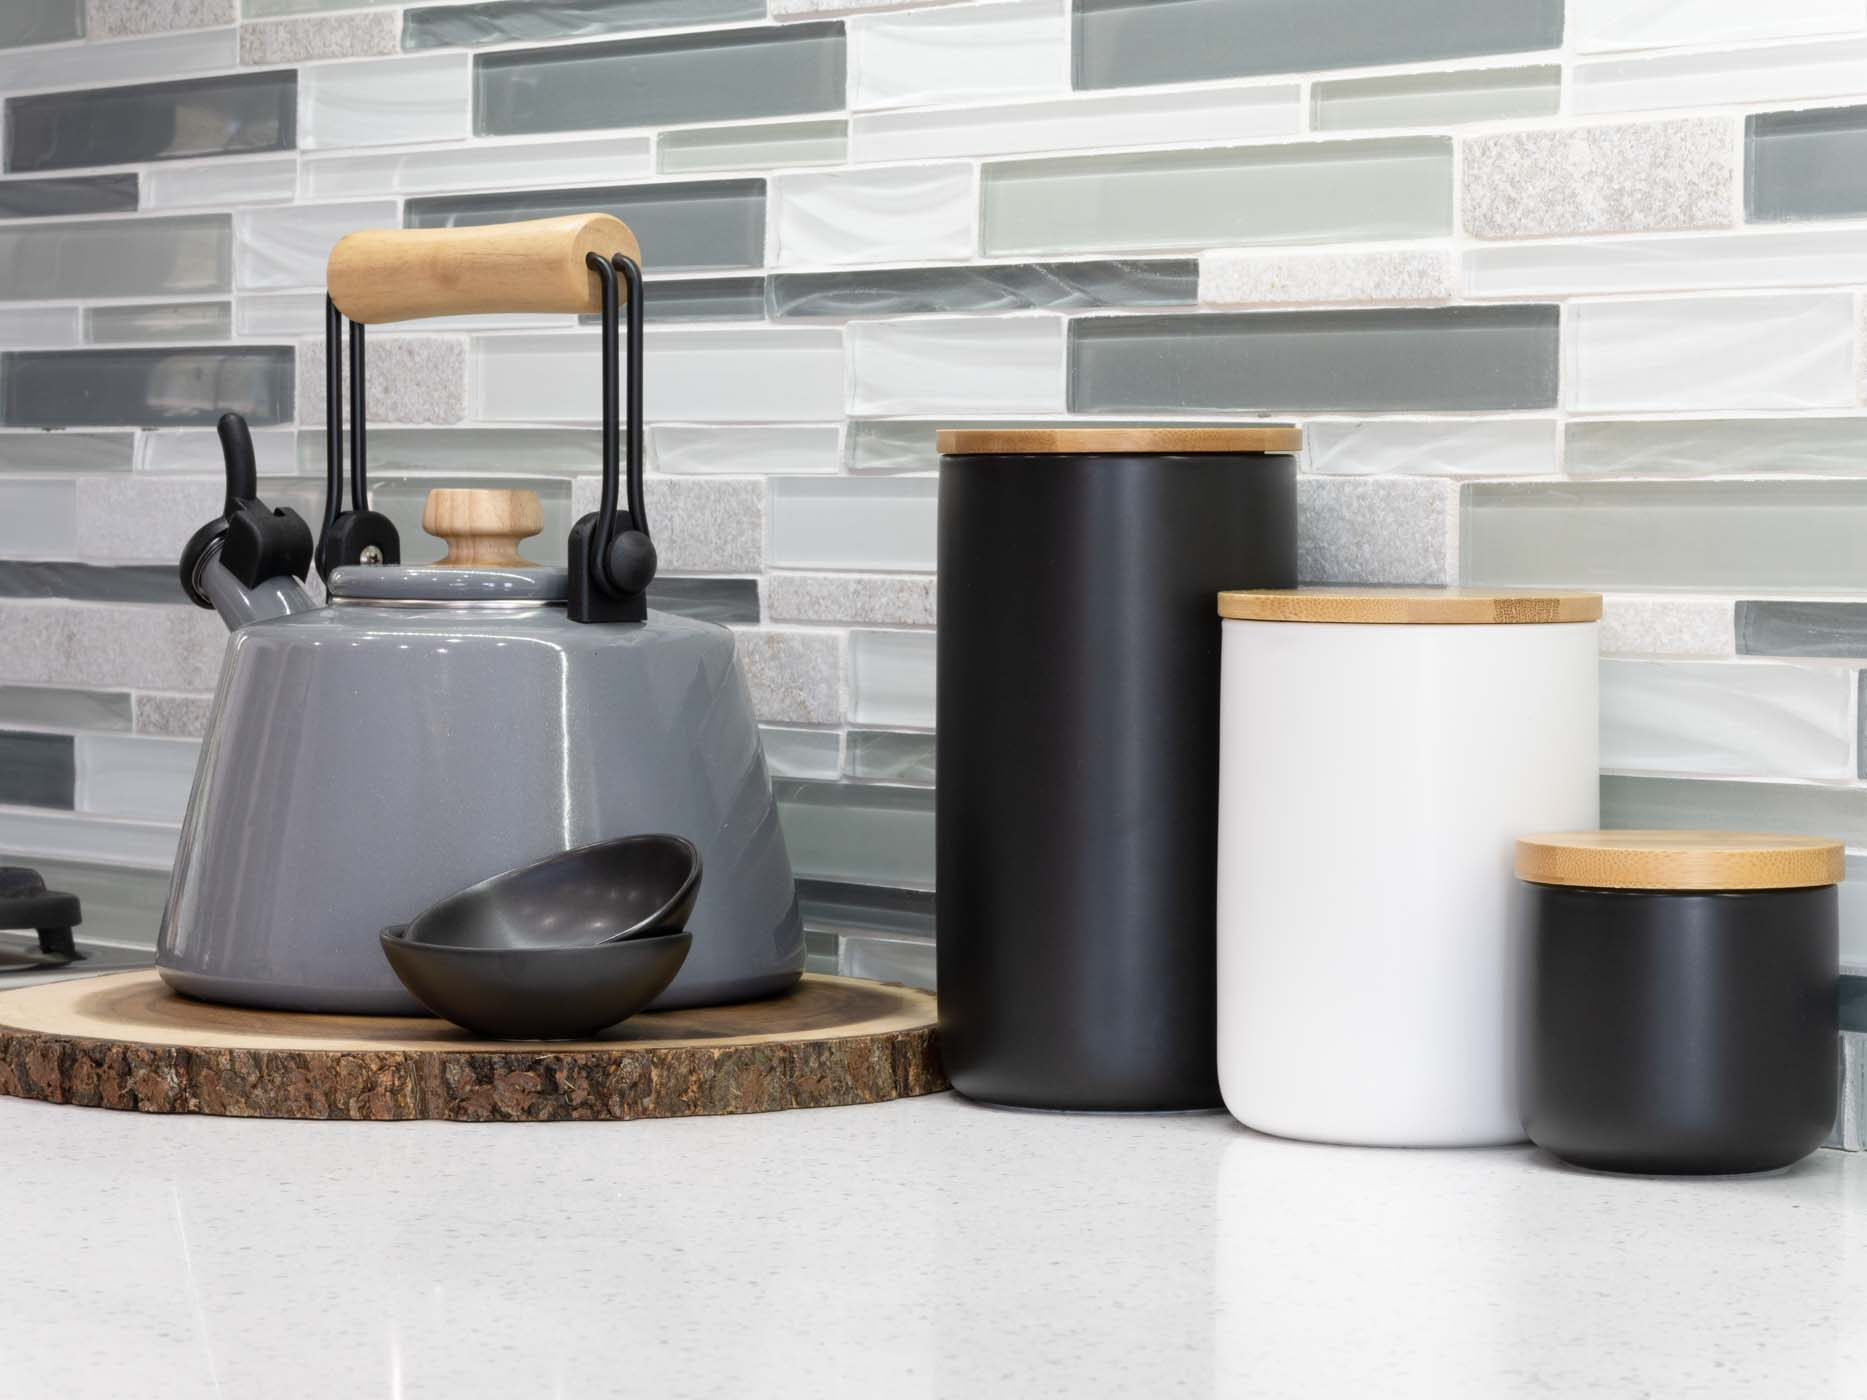 gray kettle with black and white storage canisters on a kitchen countertop